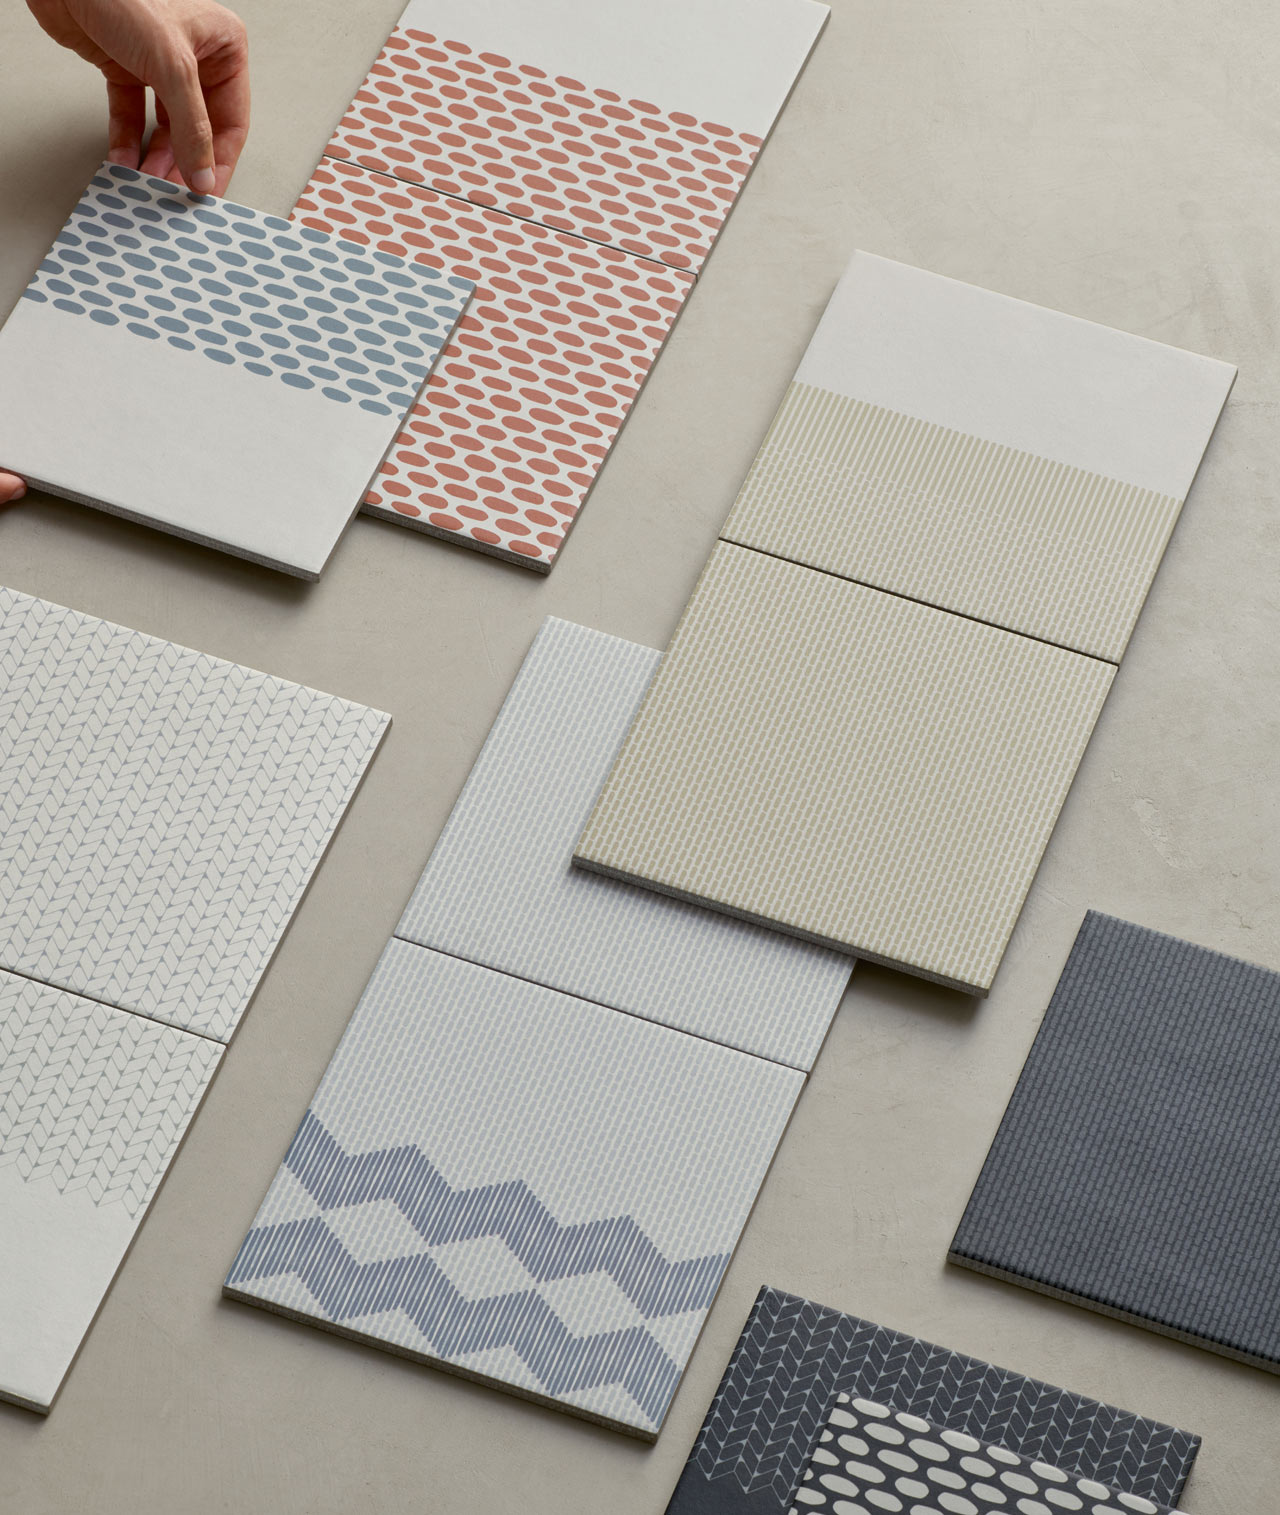 Raw Edges Introduces Latest Tile Collections For Mutina Design Milk